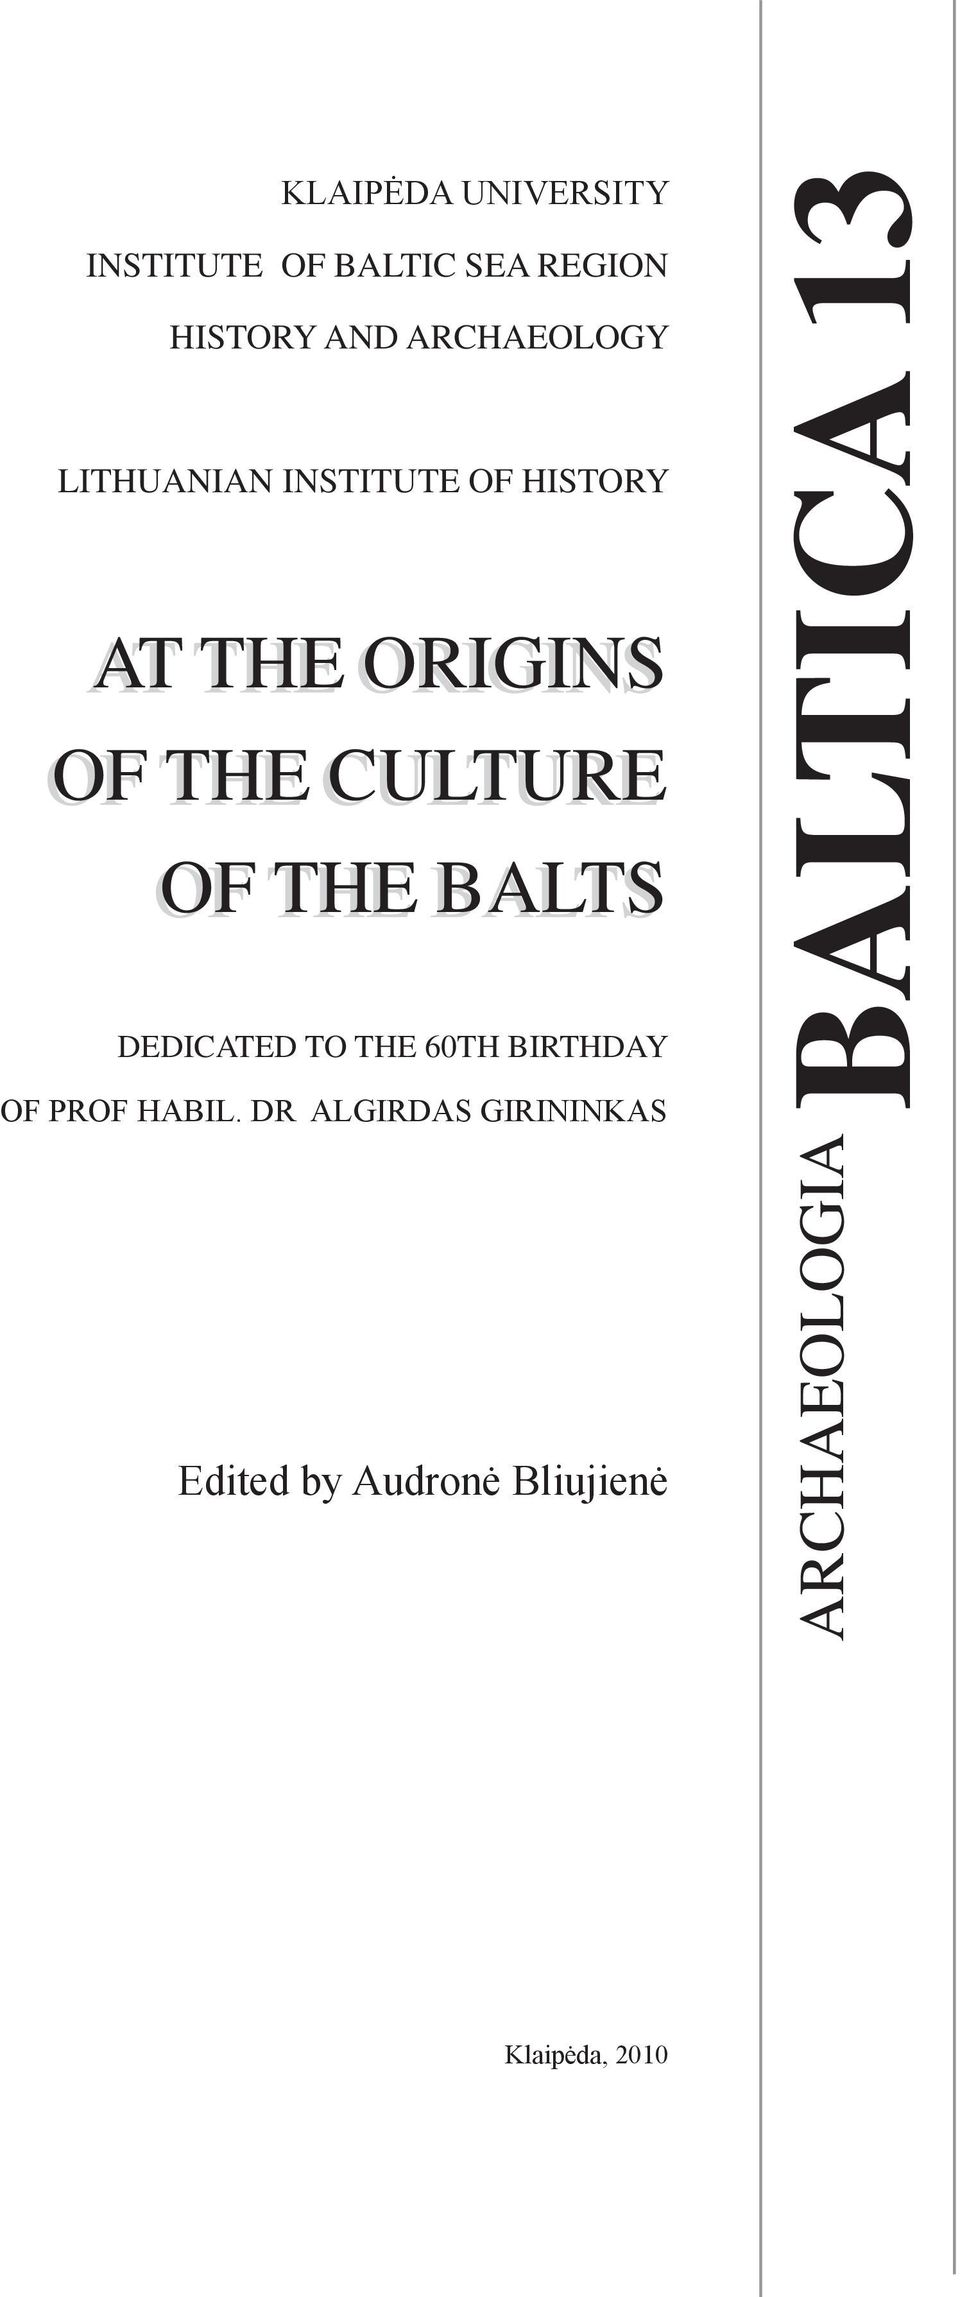 CULTURE OF THE BALTS DEDICATED TO THE 60TH BIRTHDAy of Prof habil.